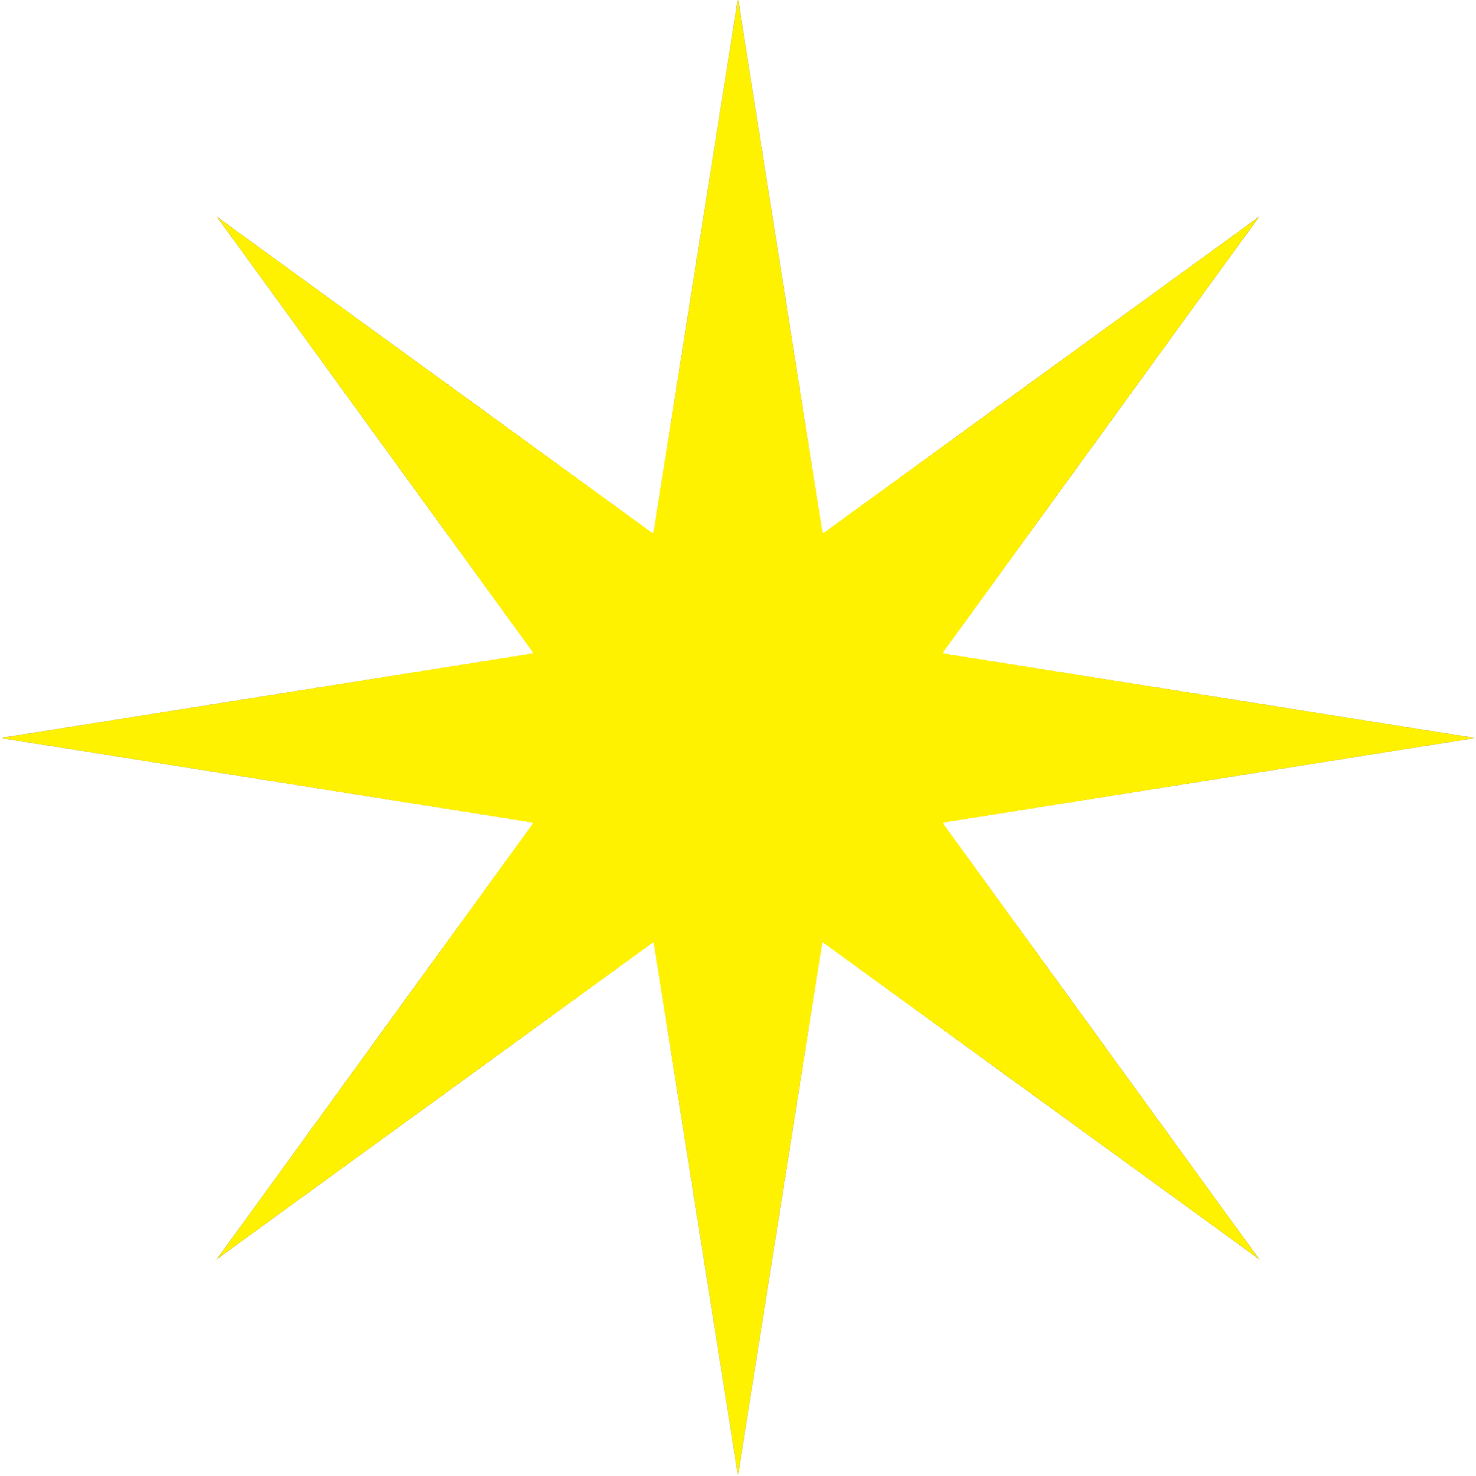 yellow 8-pointed star clipart